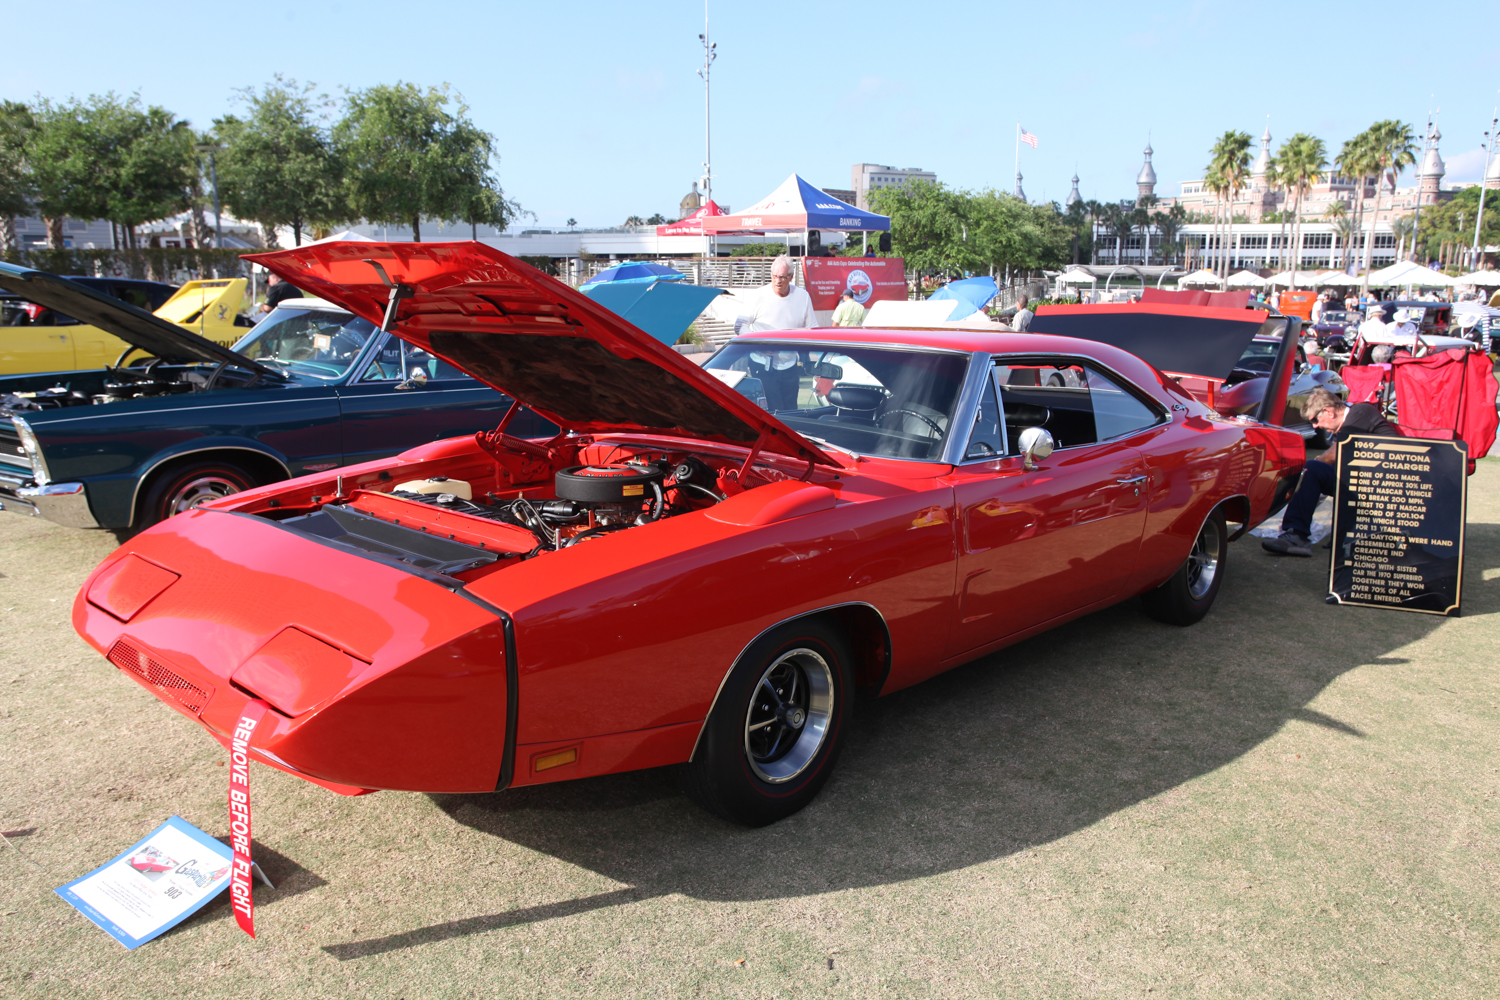 Unusual to see a '69 Dodge Daytona.  Superbirds seem to be more numerous.